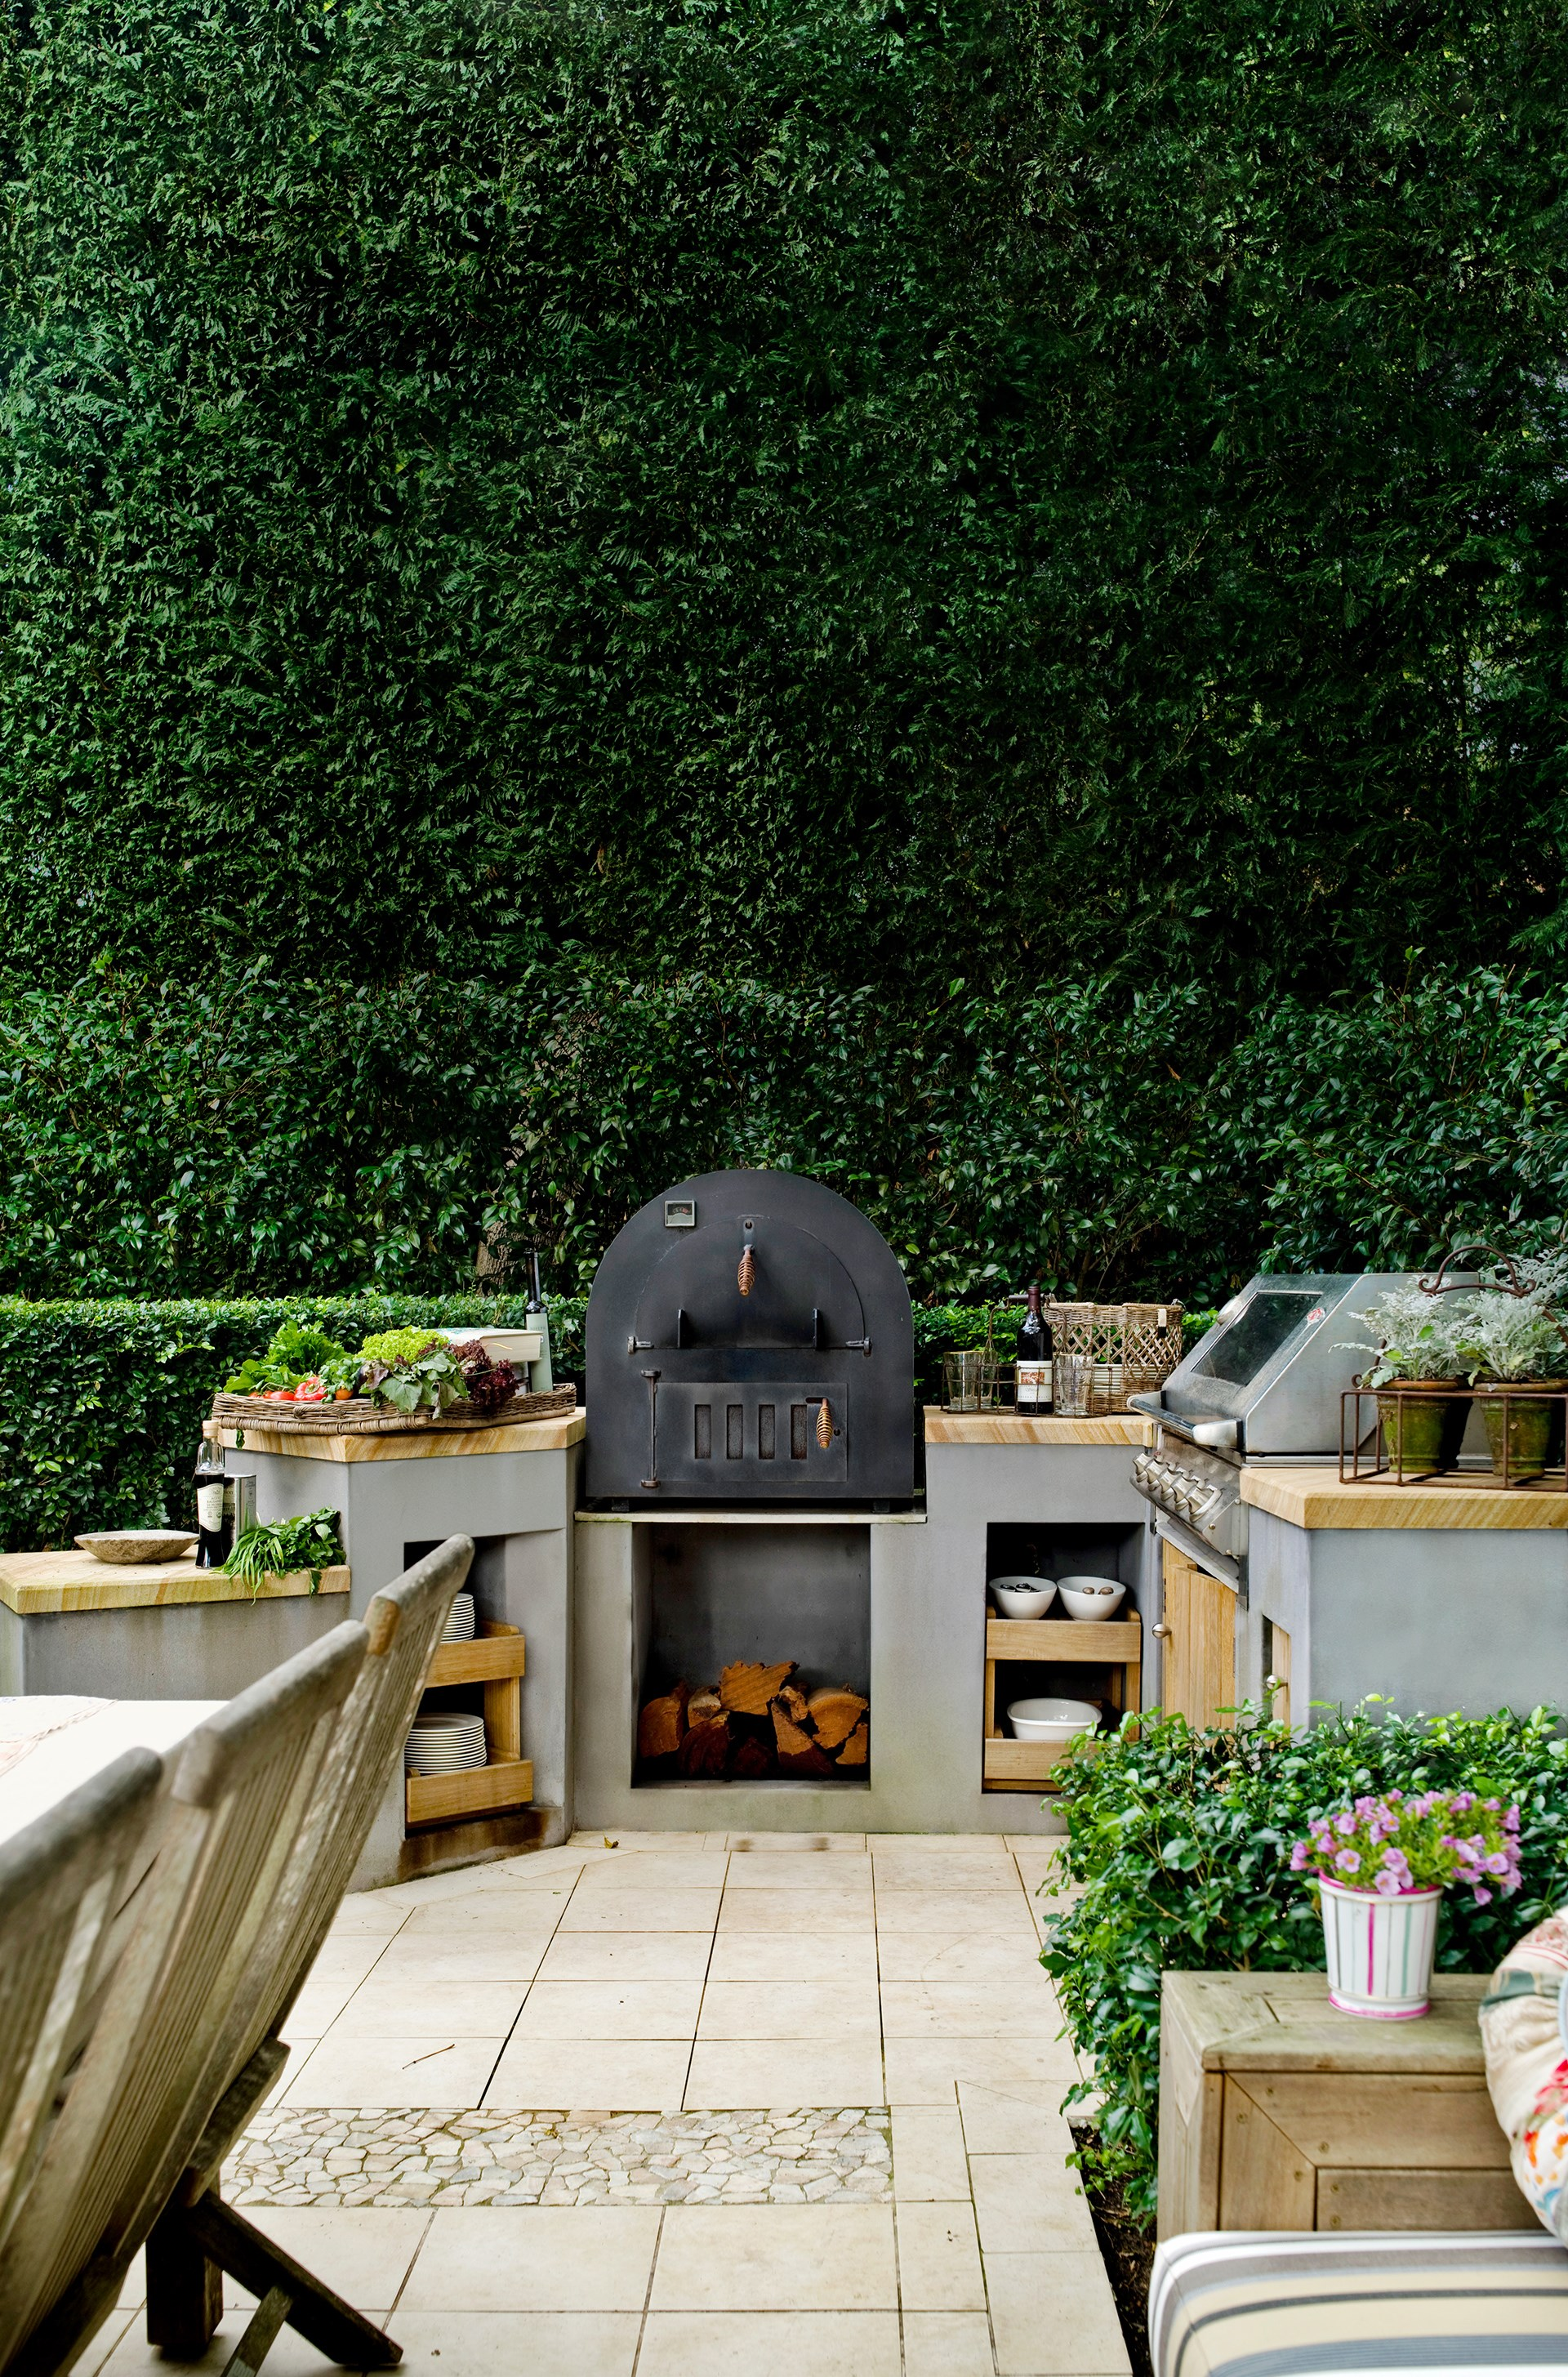 "Give your barbecue some [tender love and care](http://www.homestolove.com.au/how-to-care-for-your-barbecue-1897/?utm_campaign=supplier/|target=""_blank"") to ensure it lasts for many years to come. Photo: Scott Hawkins / *Australian House & Garden*"